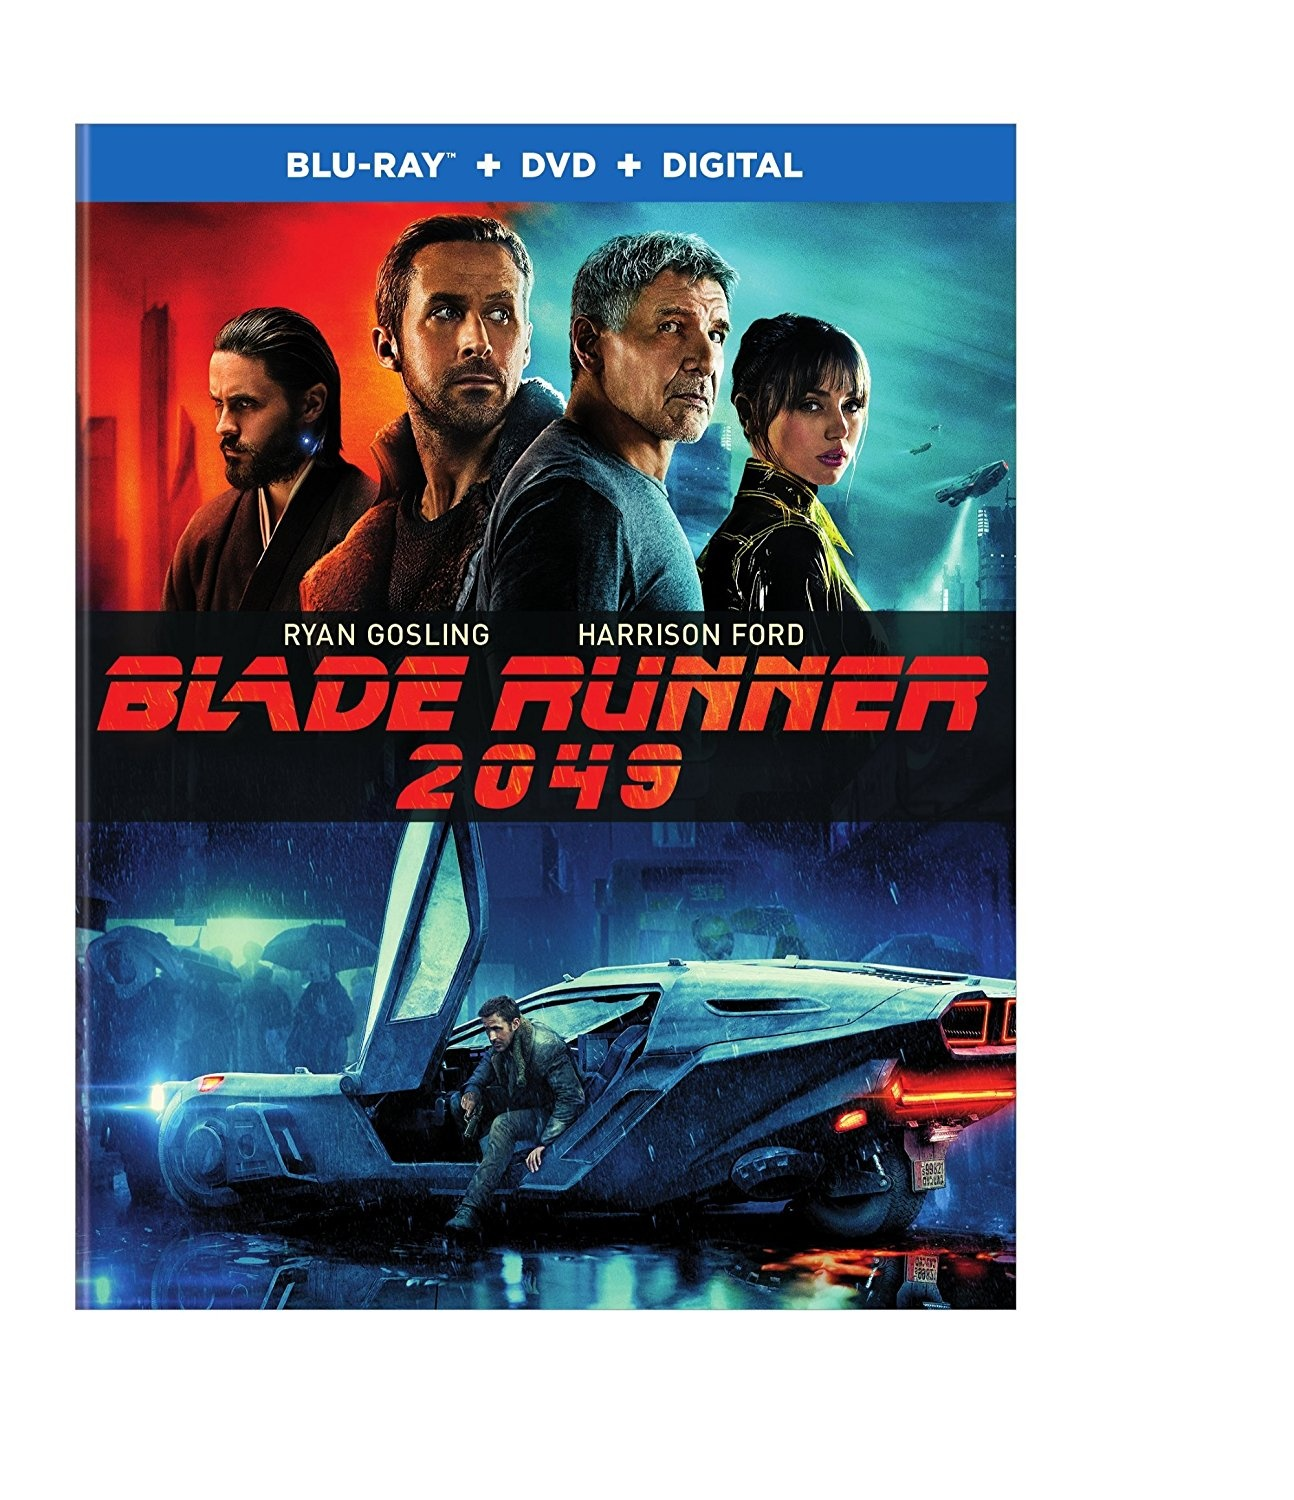 Blade Runner 2049 (Blu-ray + DVD + Digital Combo Pack) by Unknown, ISBN: 0883929571888